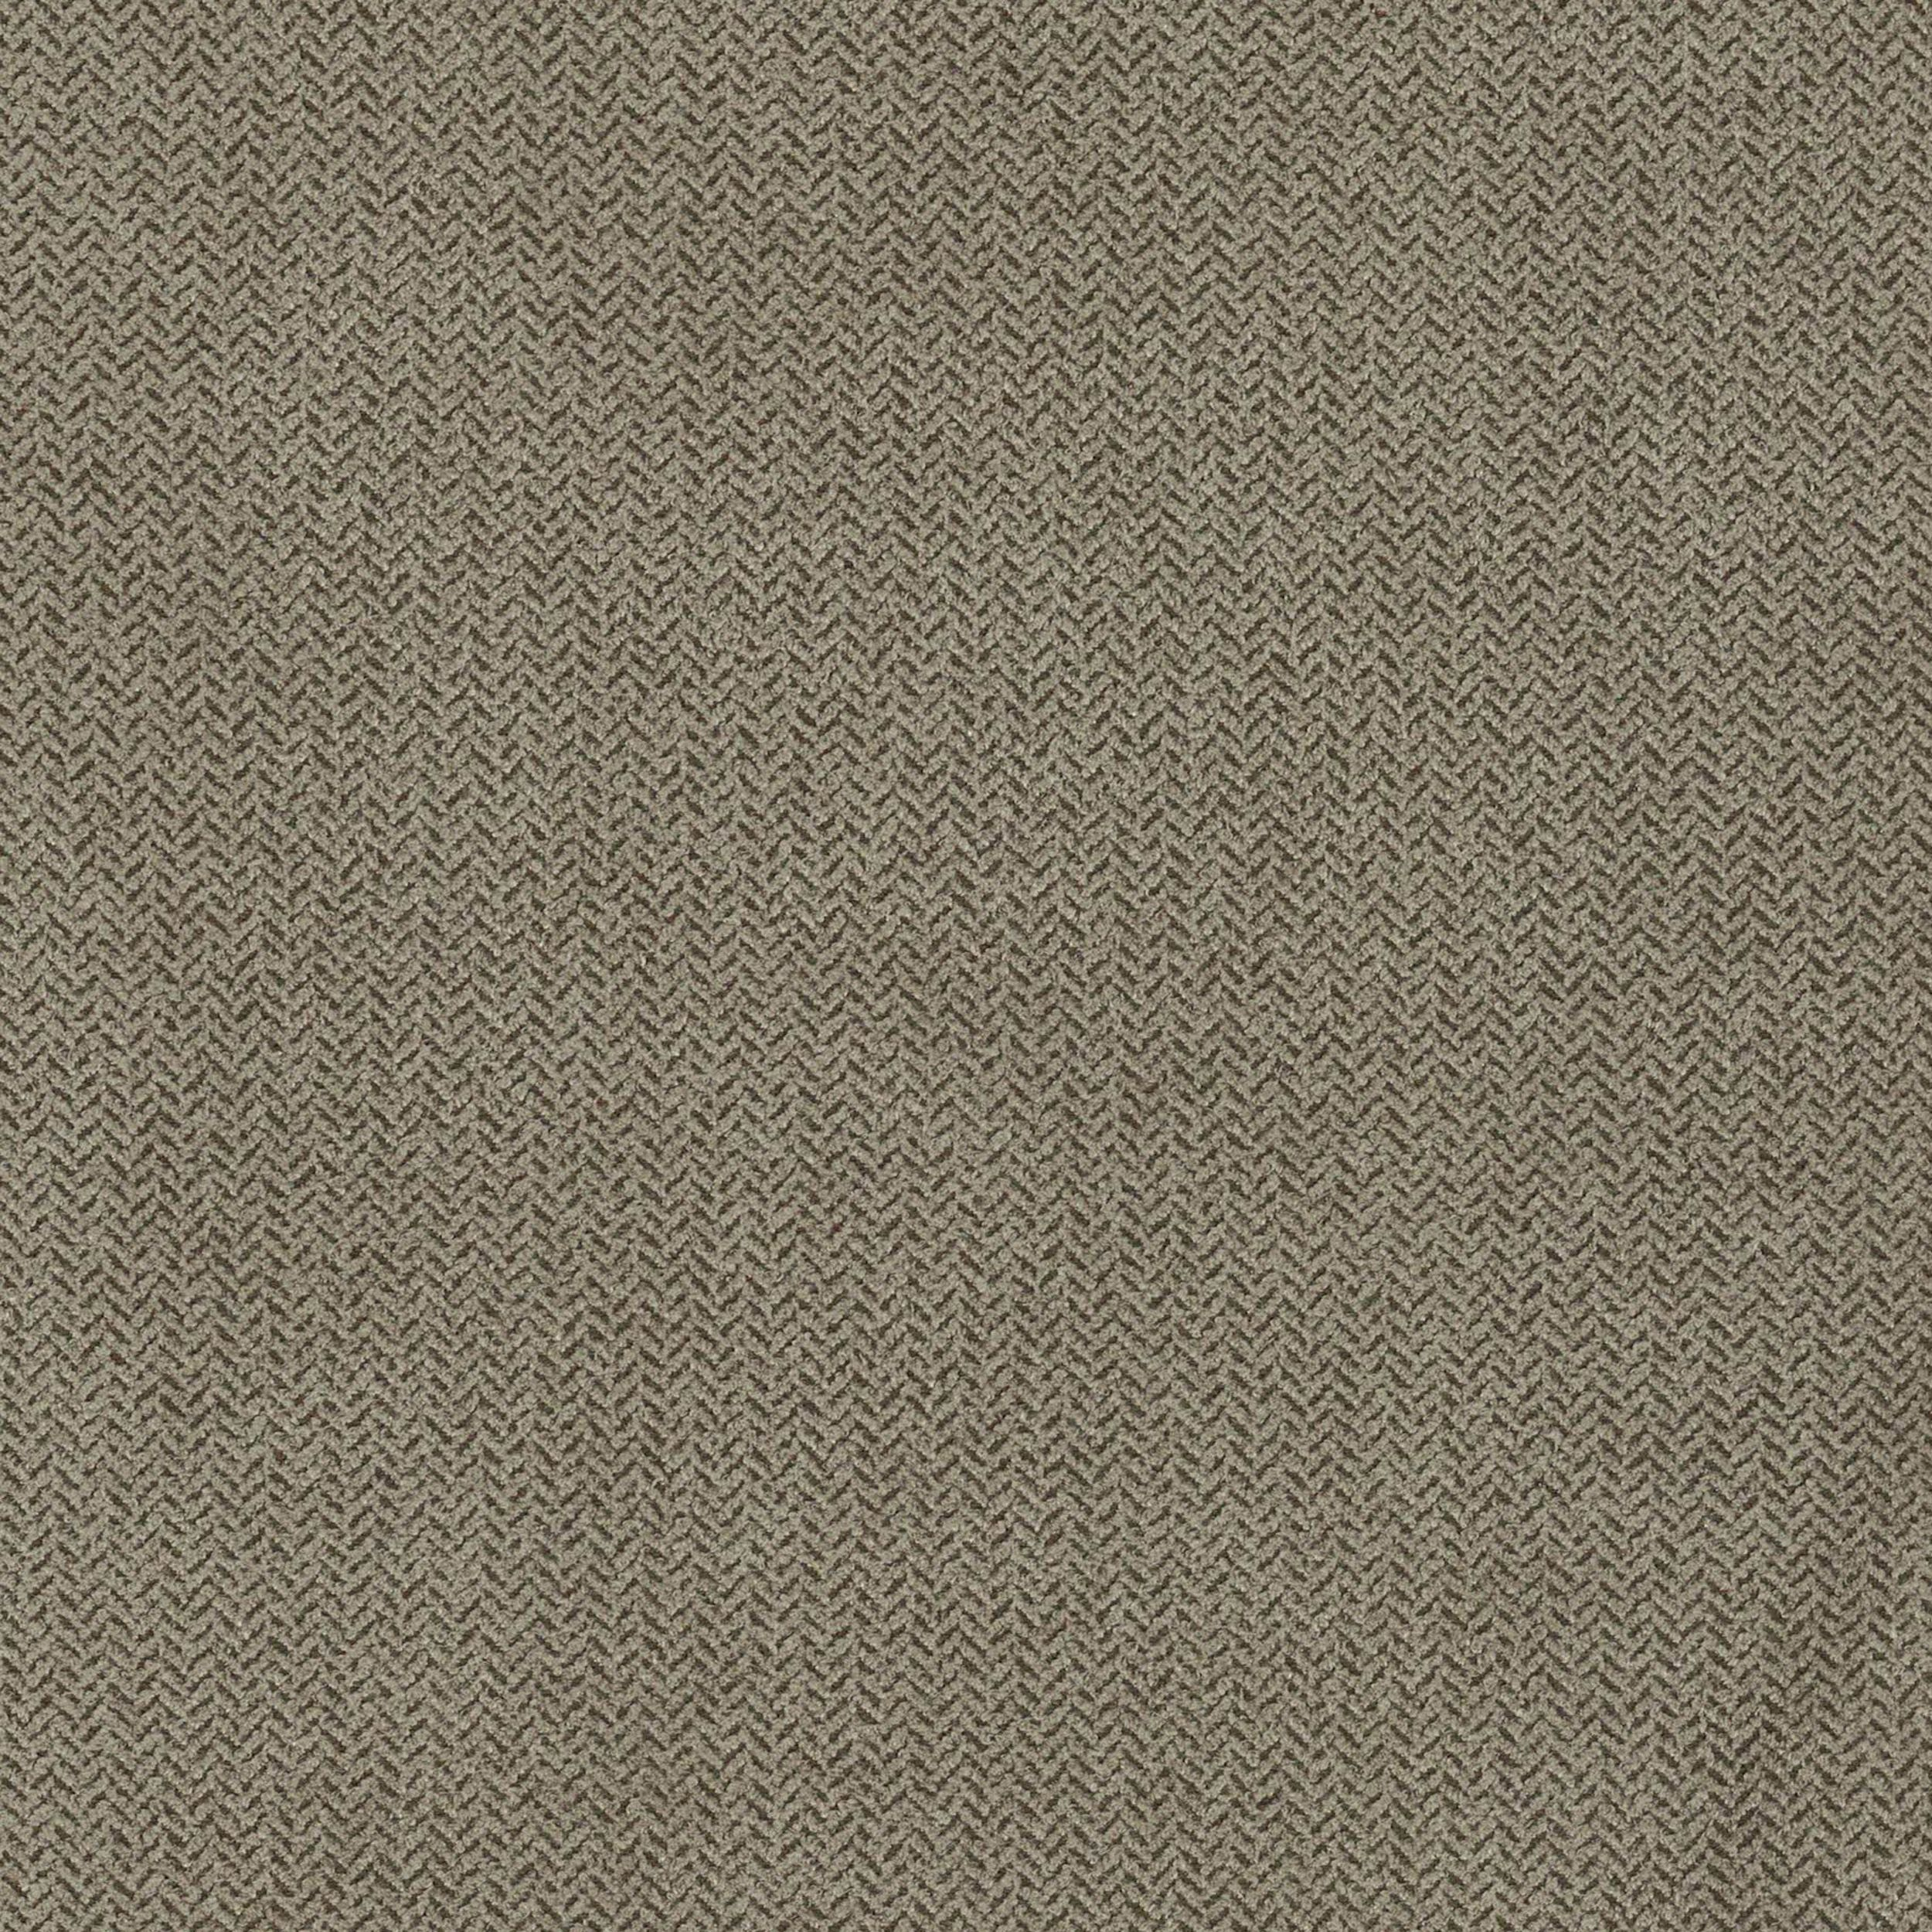 Douglas Microfiber Suede Is One Of The Most Durable And Easy To Clean Fabrics Available It Is Made Of 100 Micro Denier Polyester Fib Microfiber Stain Swatch